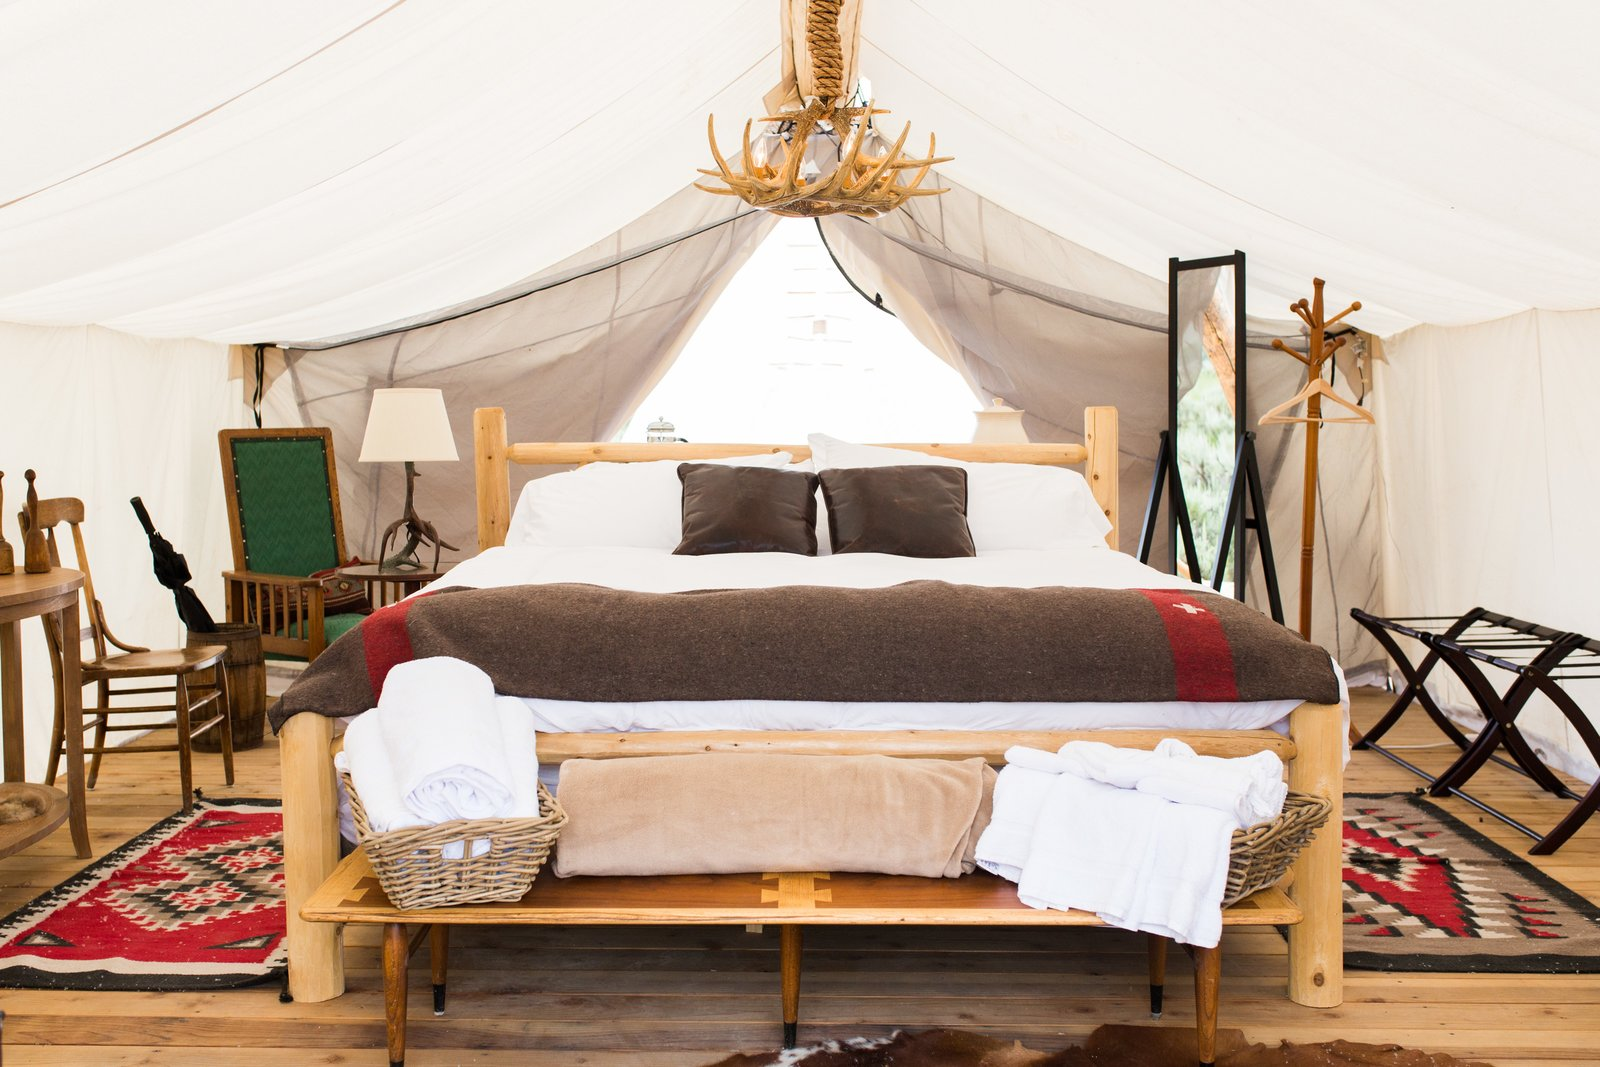 At the Vail location, designer Cassie Novick sourced western, ranch-inspired furnishings from local markets, estate sales, and flea markets. In the tents, you'll find Native American-inspired details, special books, and maybe even some vintage board games.  Photo 4 of 12 in Get the Modern Camping Experience You Crave at One of These New Secluded Retreats